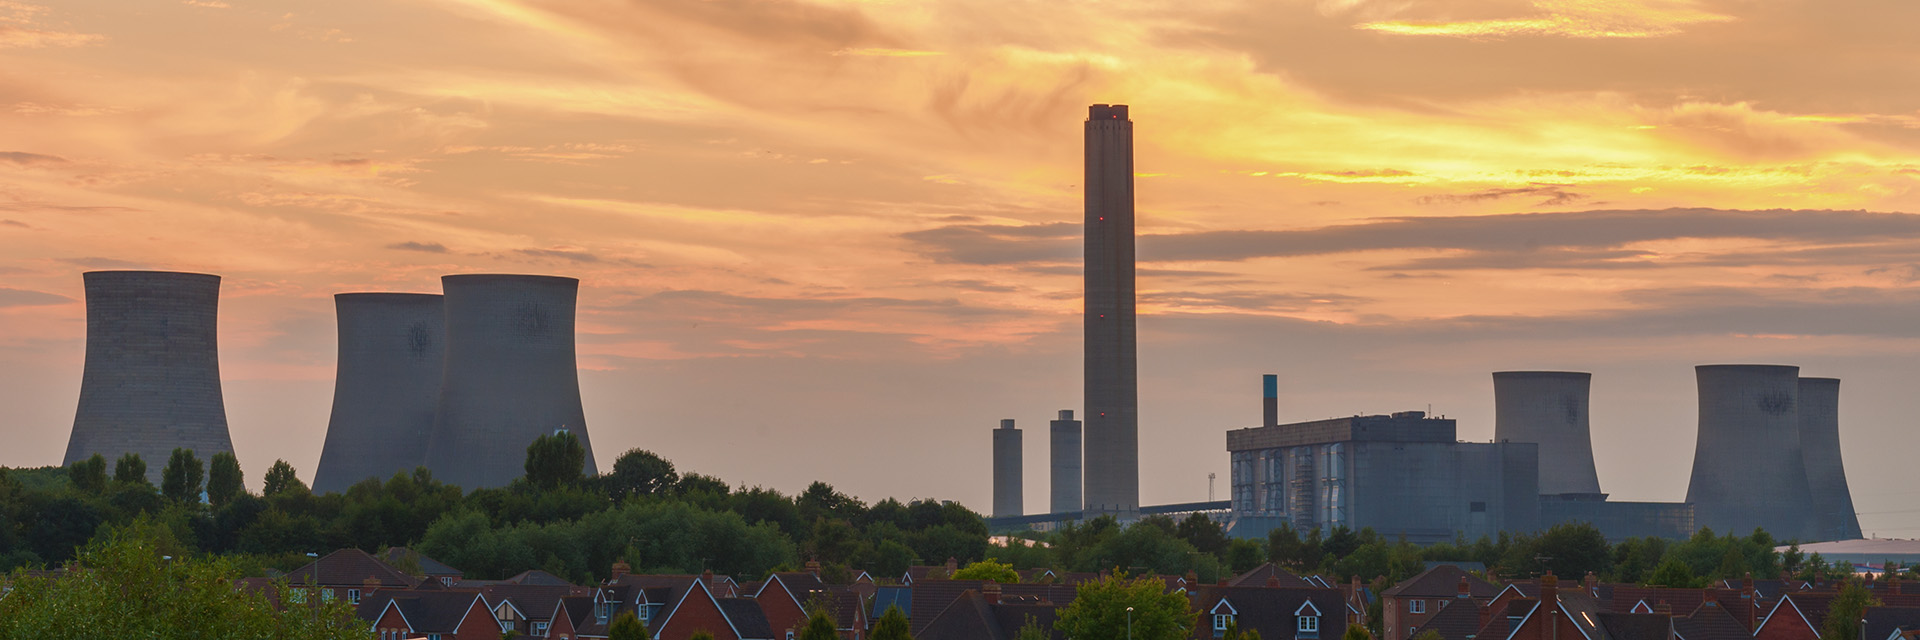 The Iconic Didcot Towers